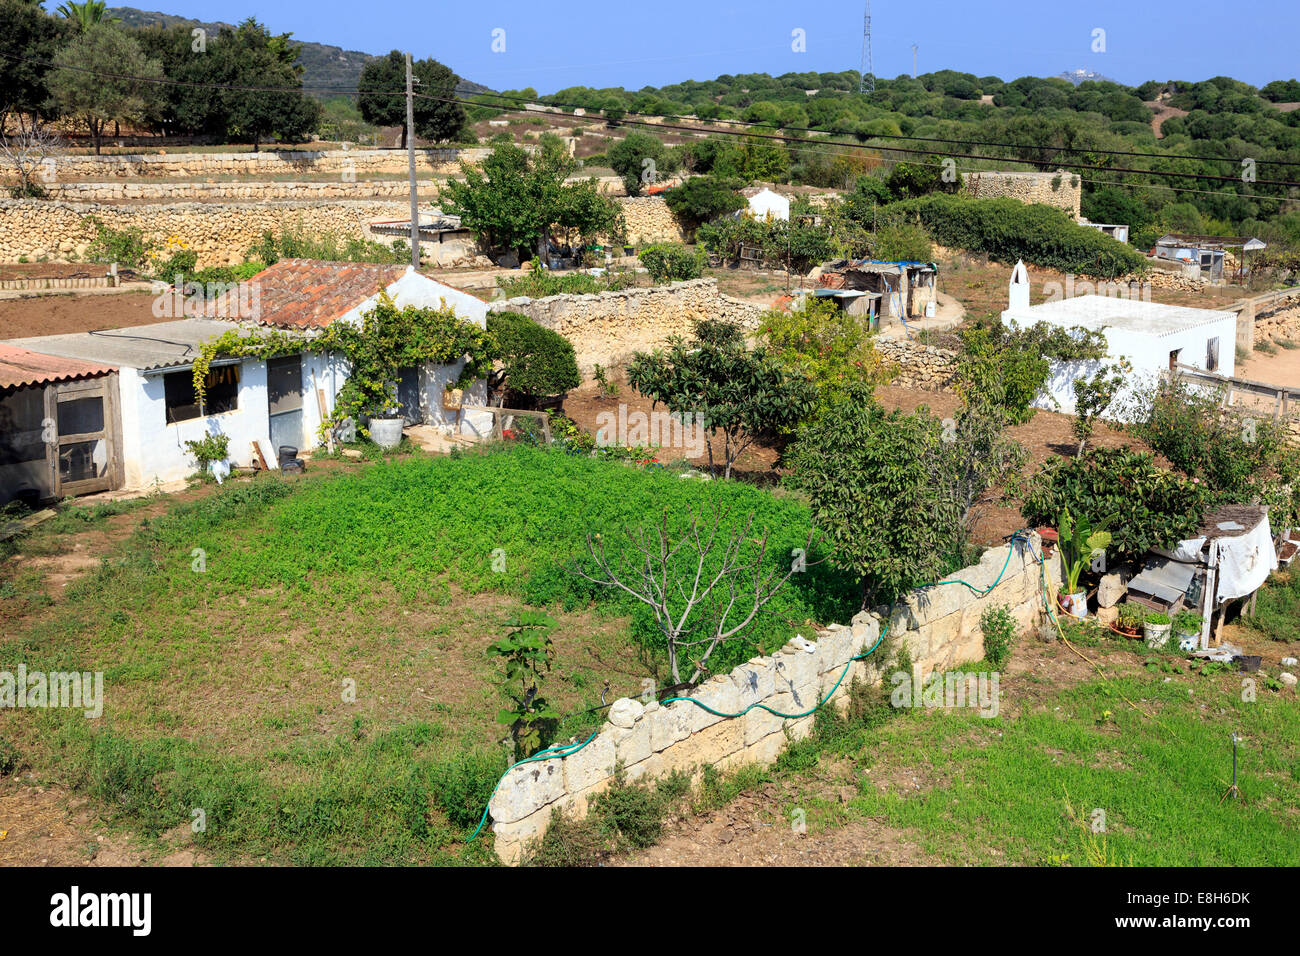 Traditional farming scene showing farmhouse and small holding fields, Menorca, Balearic Islands, Spain Stock Photo